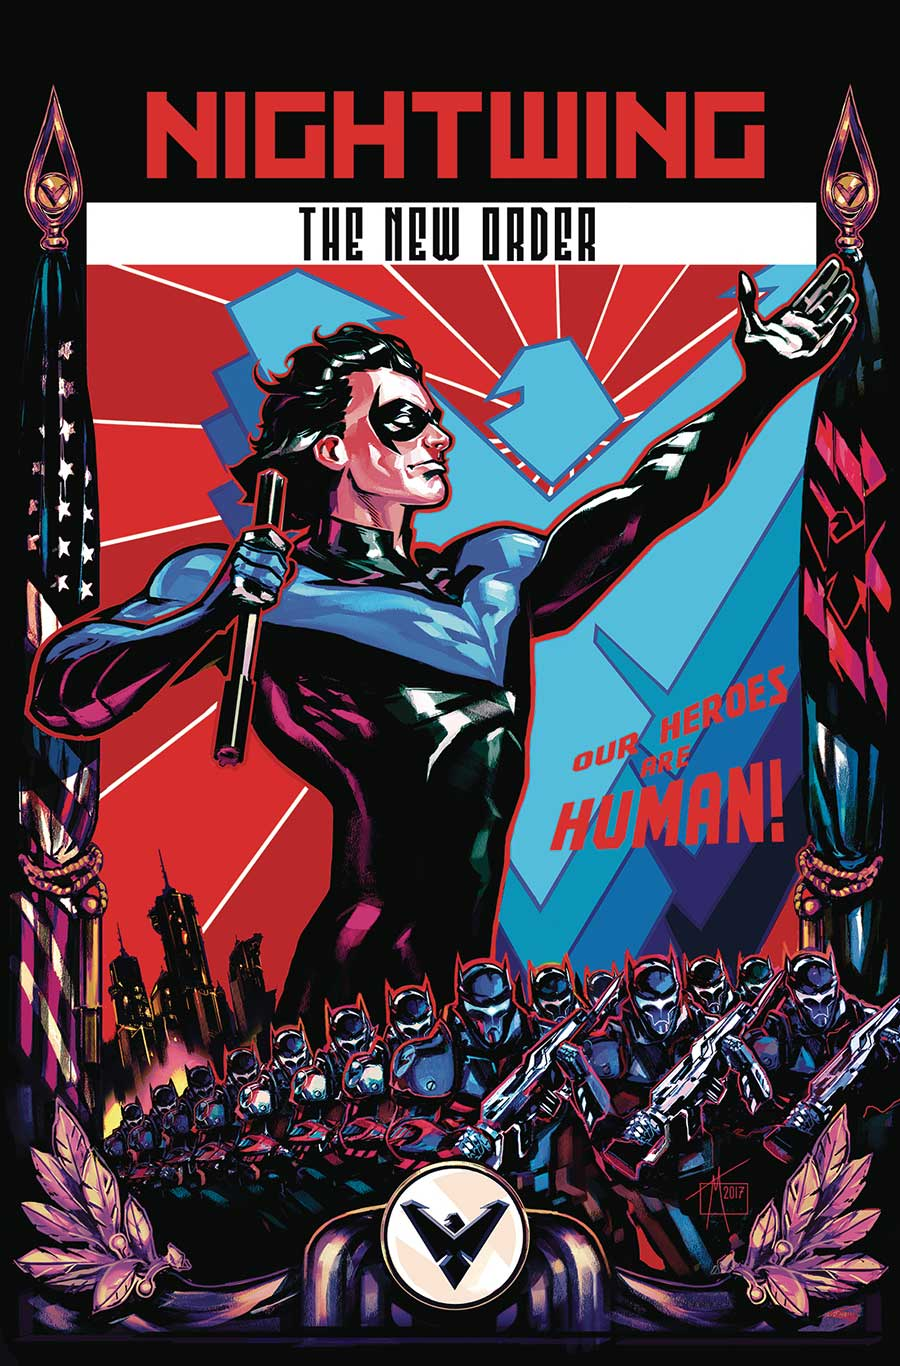 Nightwing: The New Order